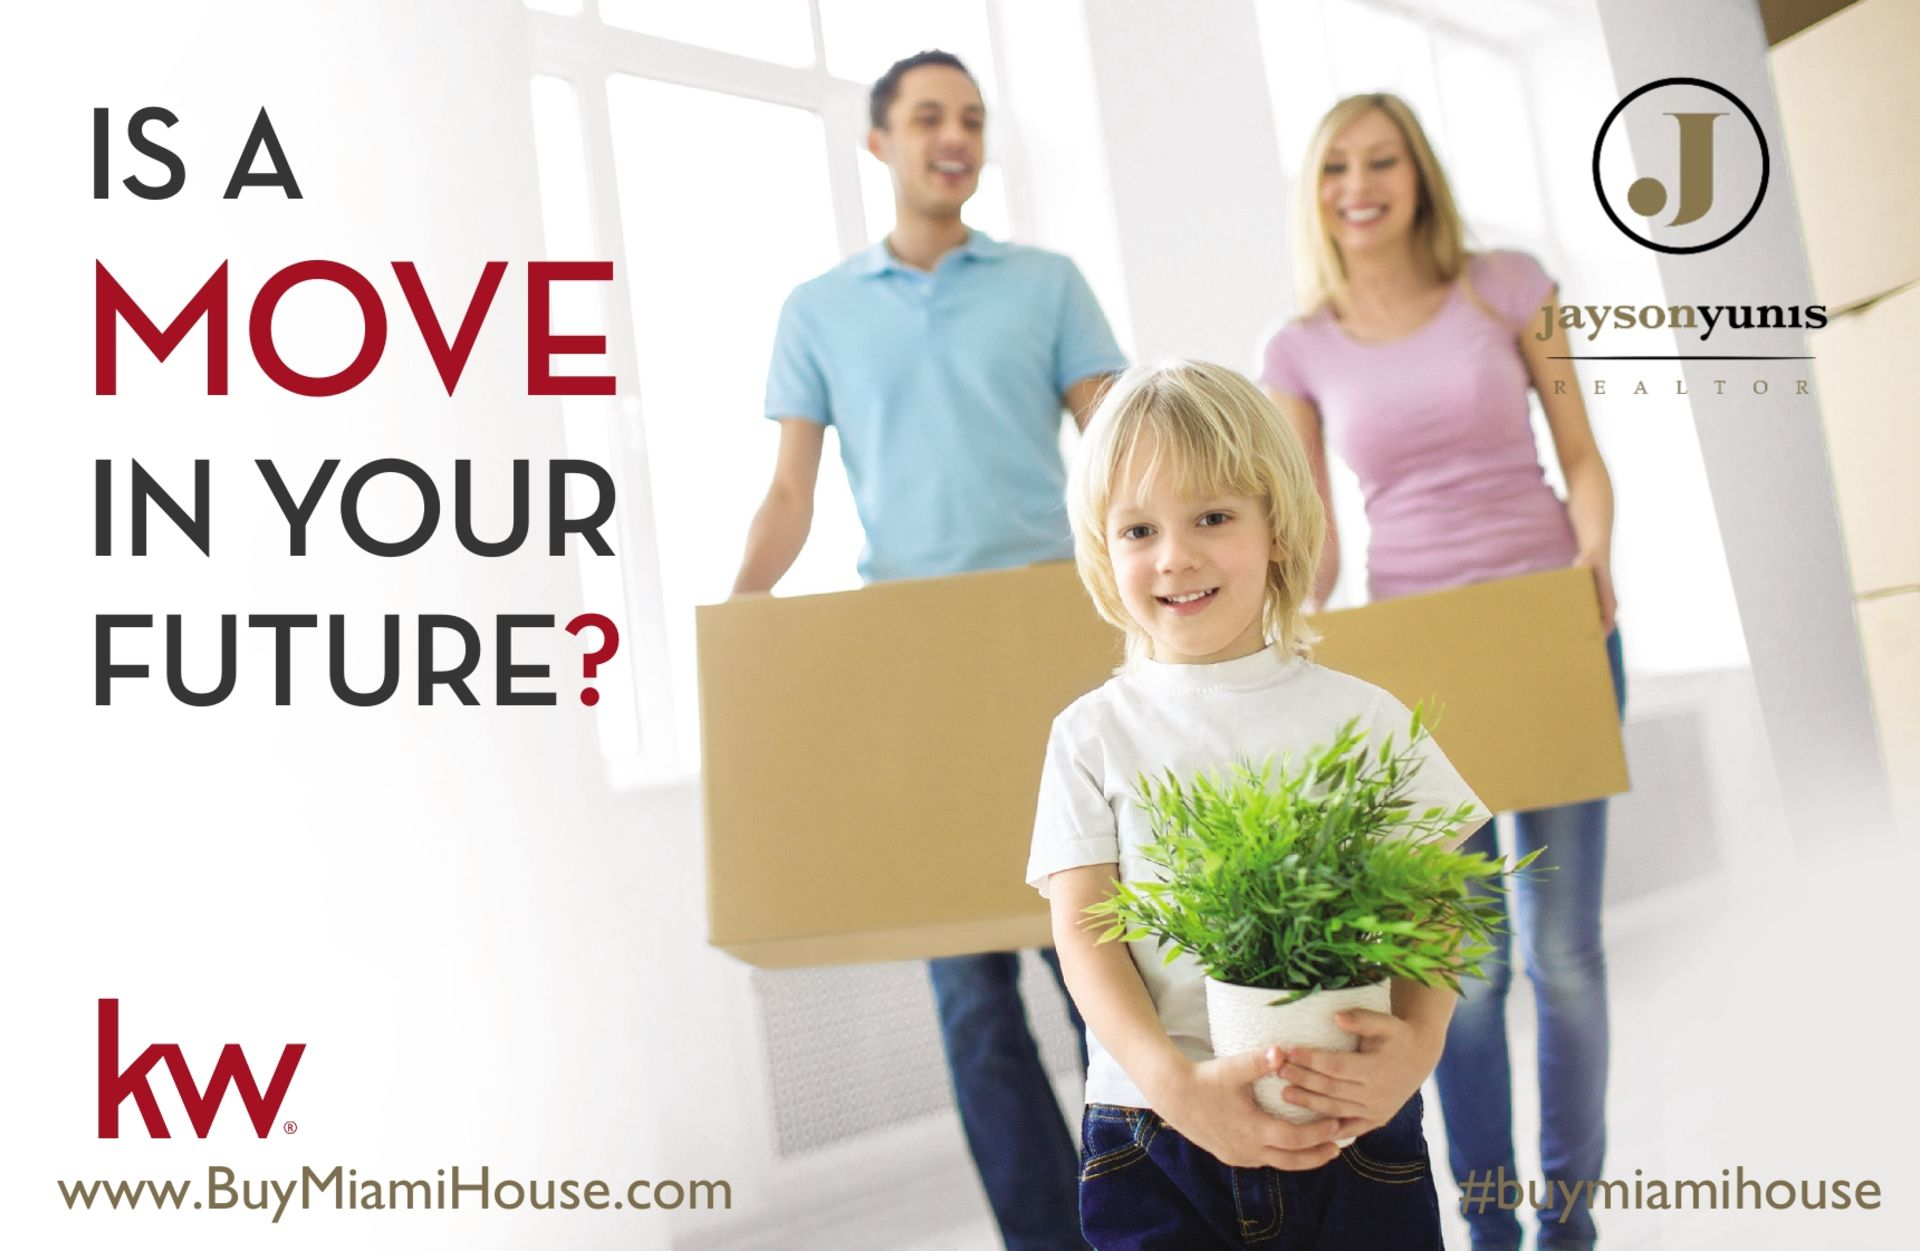 Is a move in your future?